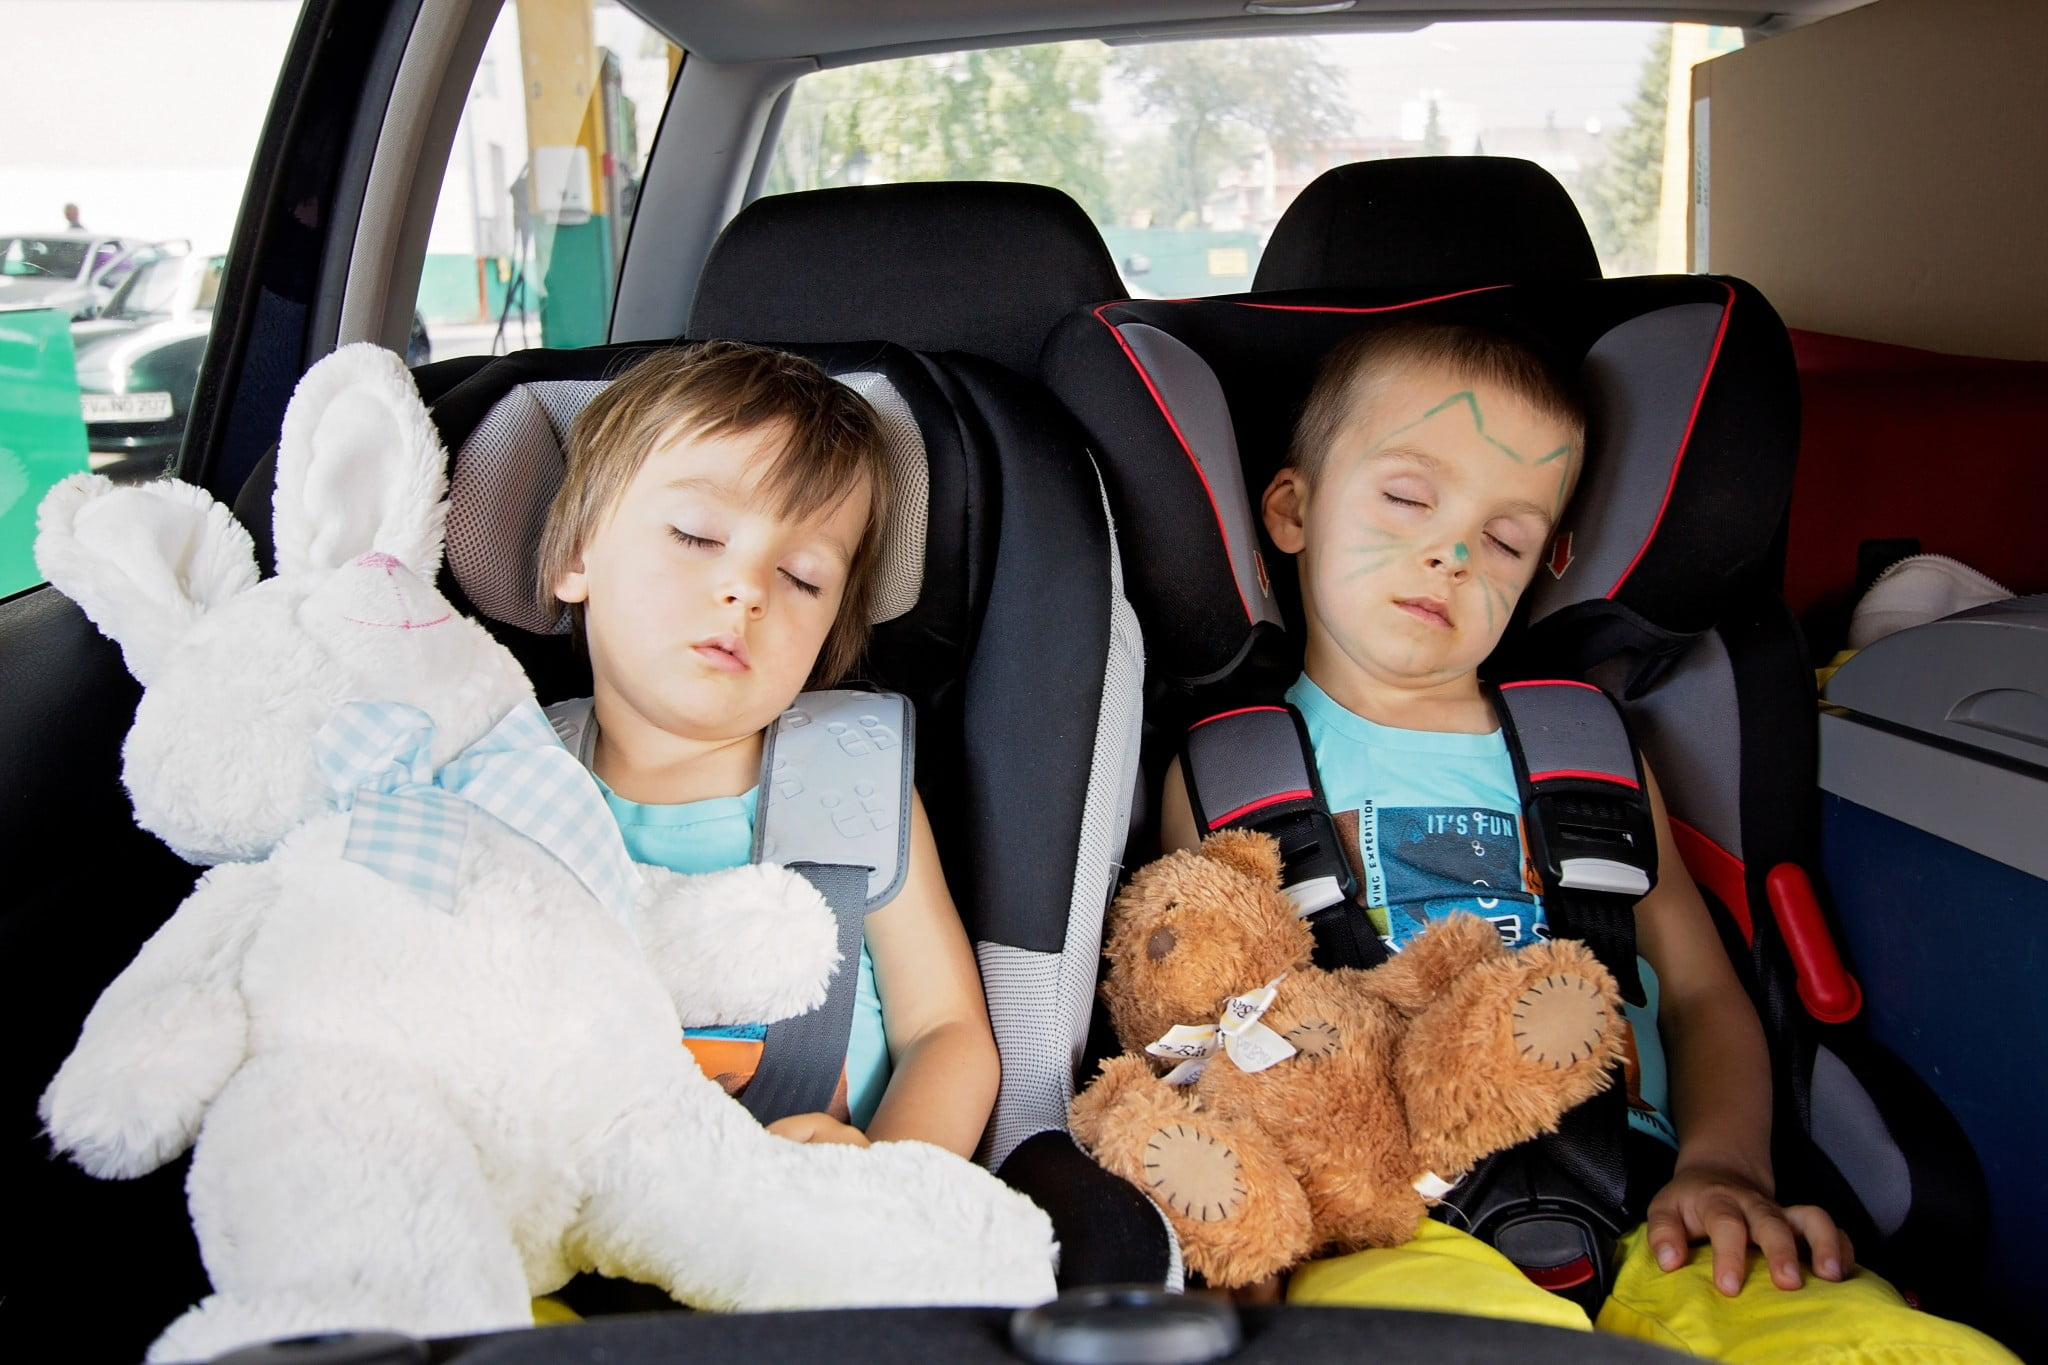 sedating antihistamines: two boys asleep in the back seat of a car